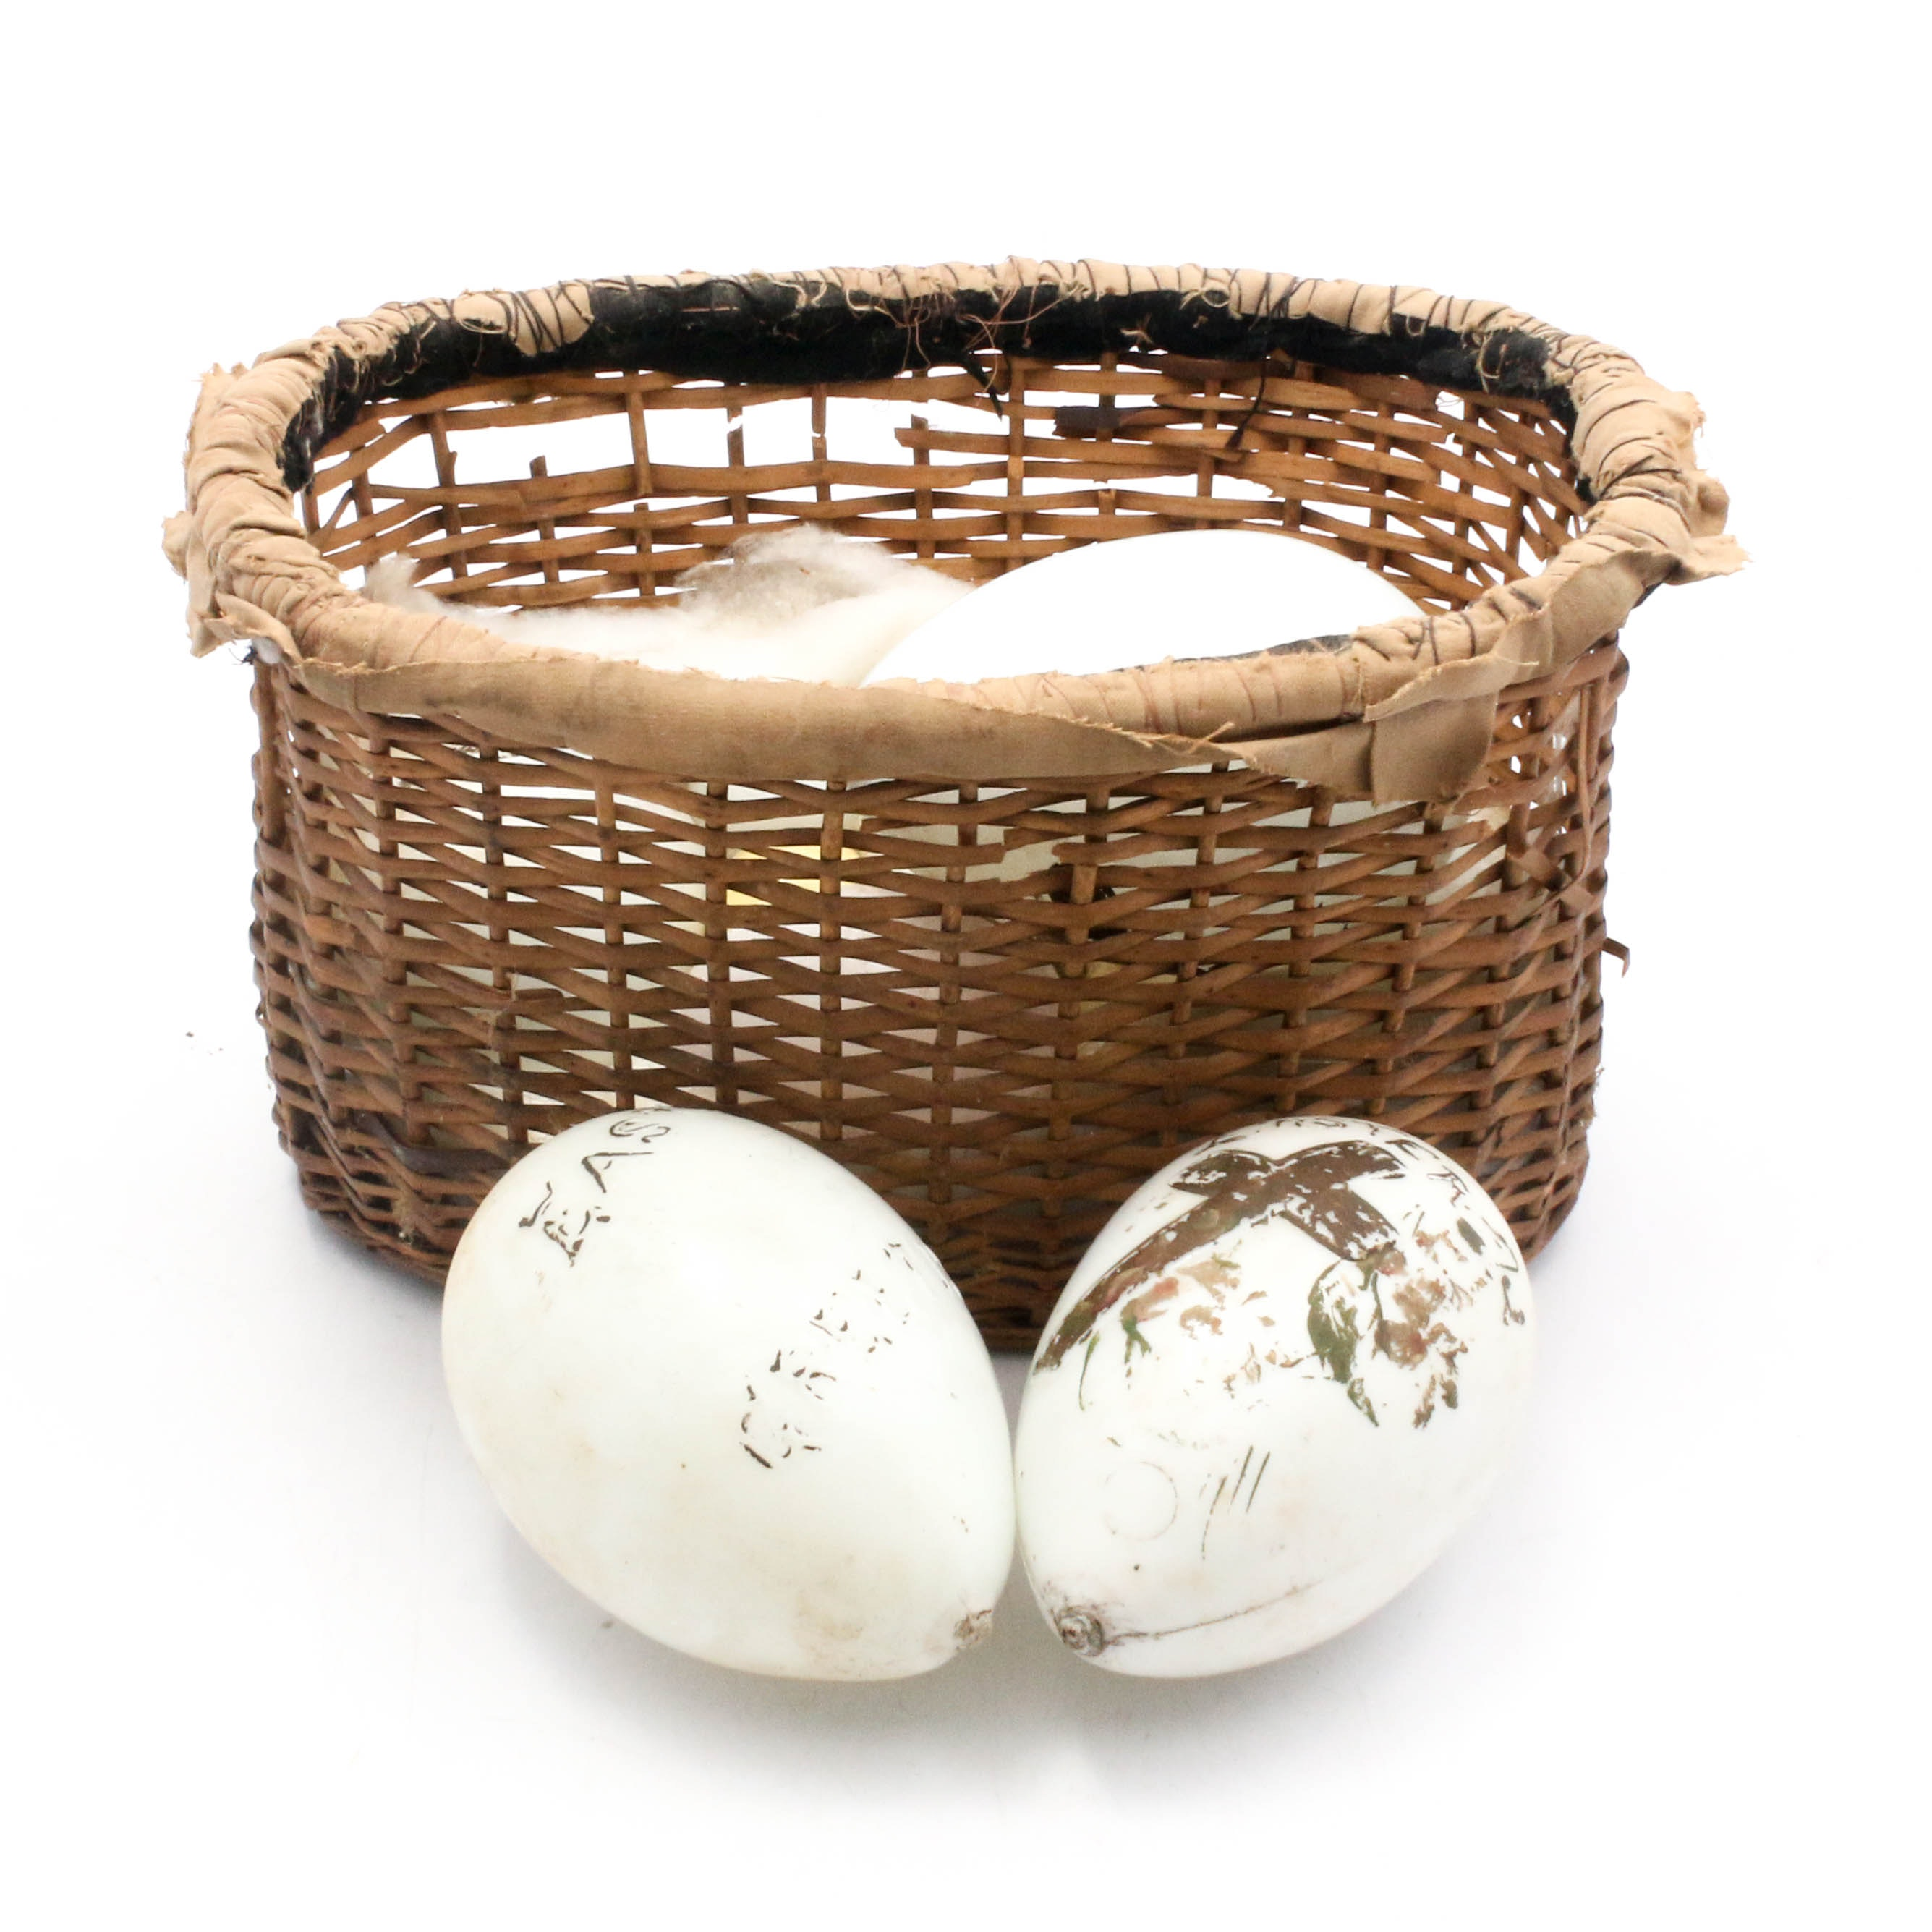 Antique Blown Milk Glass Easter Eggs in Handmade Basket, Early 20th Century